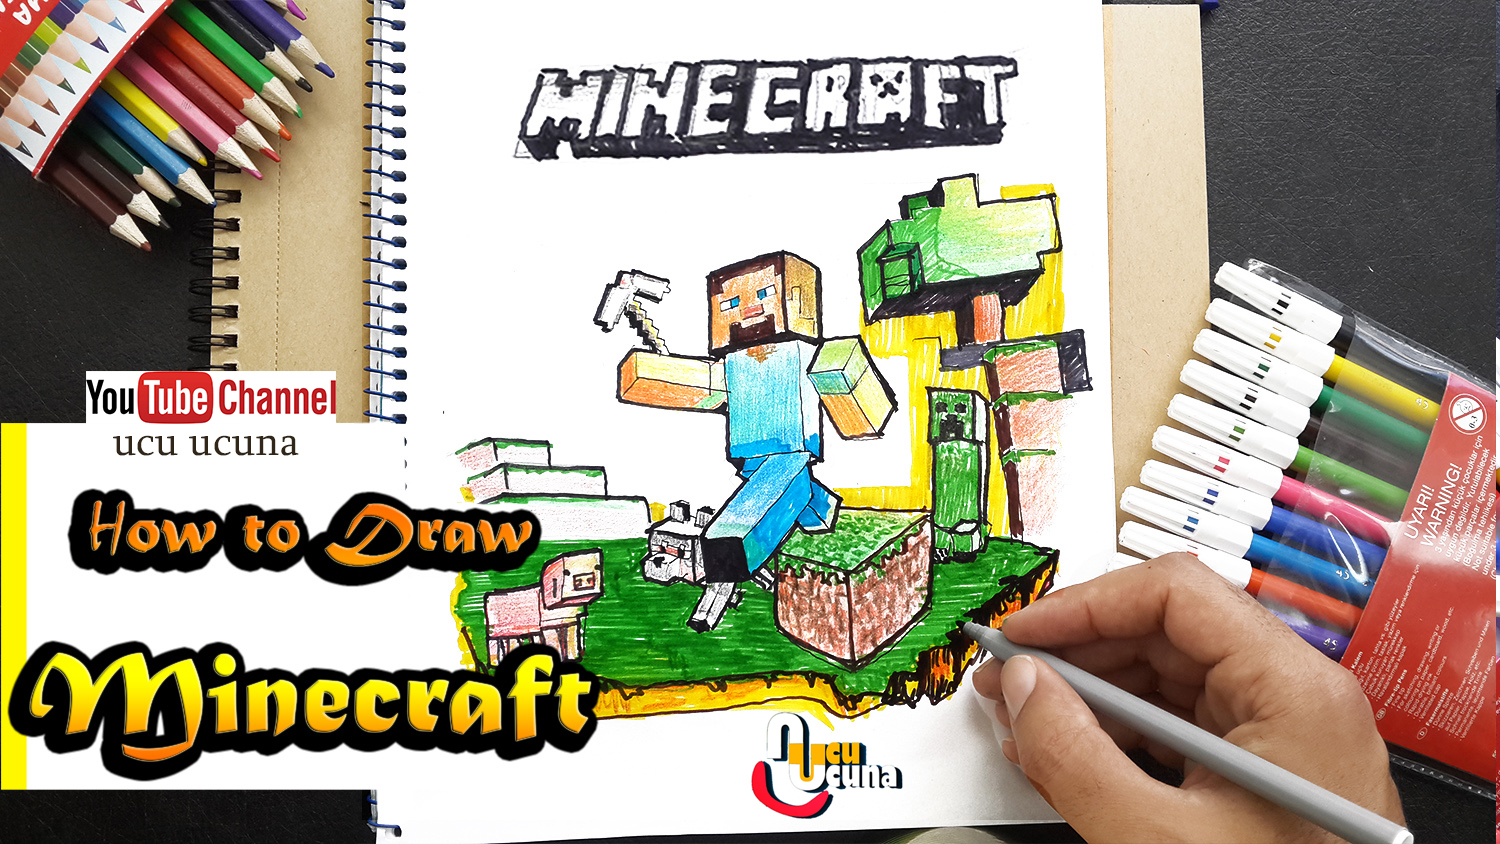 Hi everyone i ll be showing you how to draw minecraft   step by step Let s learn draw for  kids  art  important at my life  drow  with me i hope you like funny videos  tutorial if you like my draw you click my youtube channel ucu ucuna